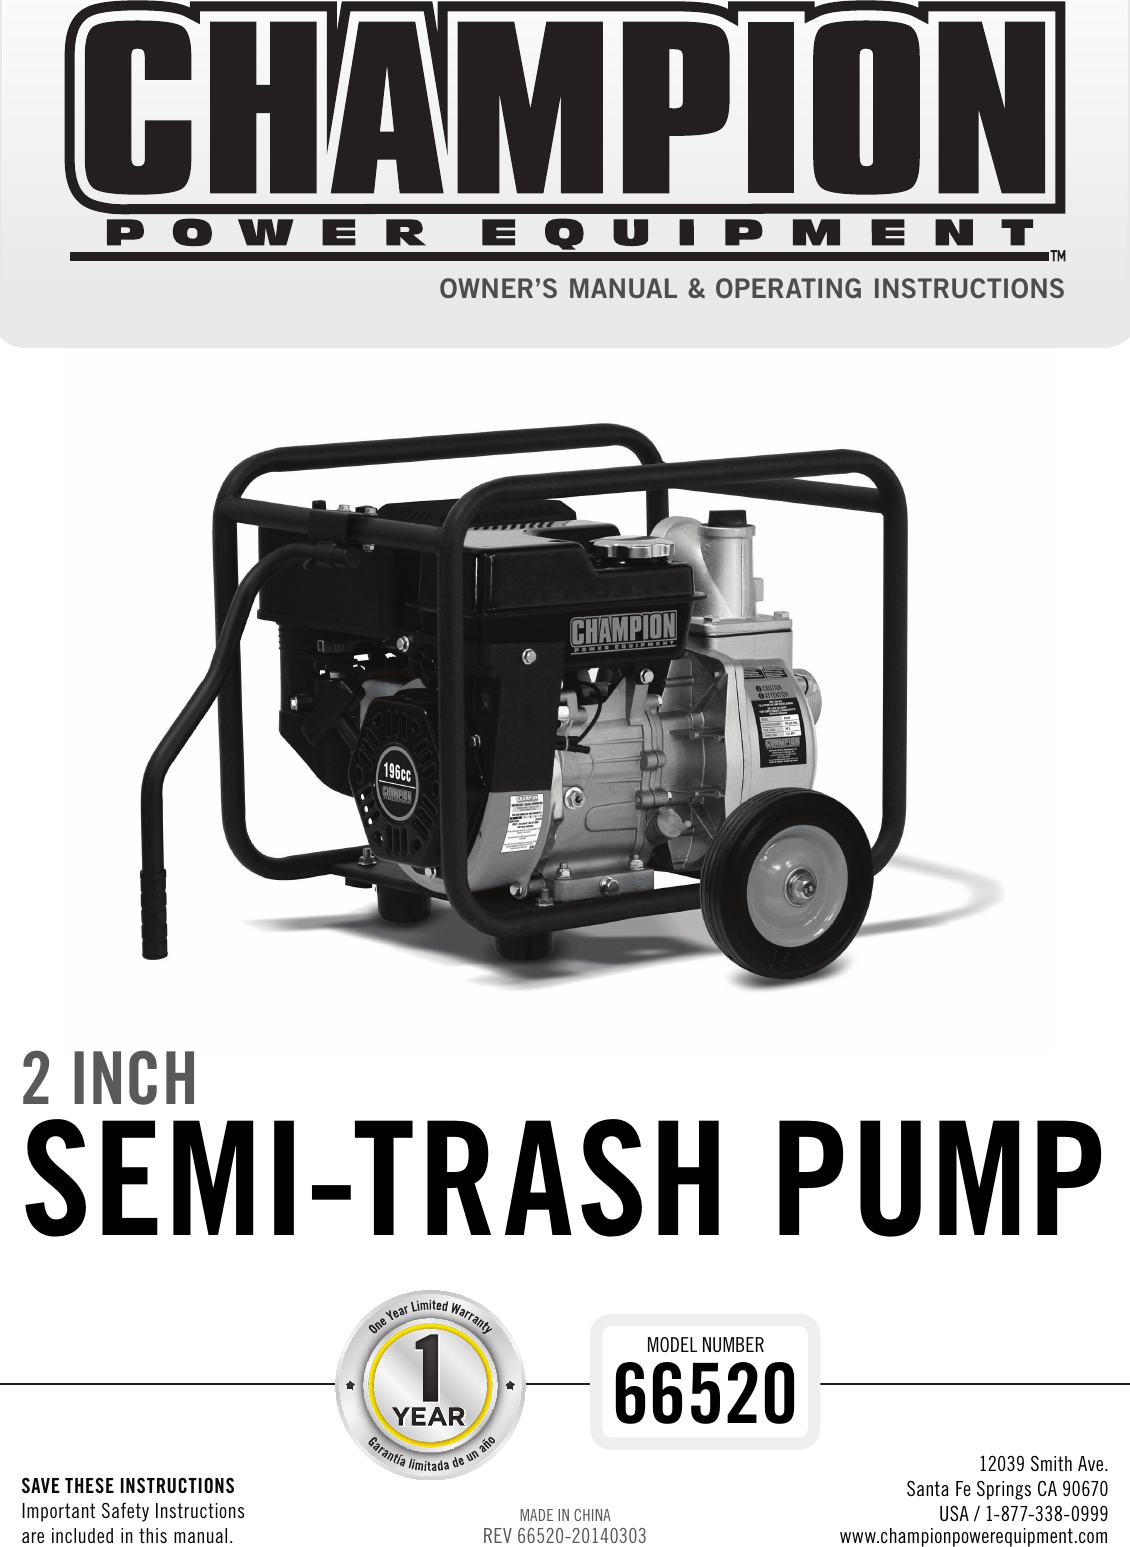 Champion Power Equipment 66520 Owners Manual